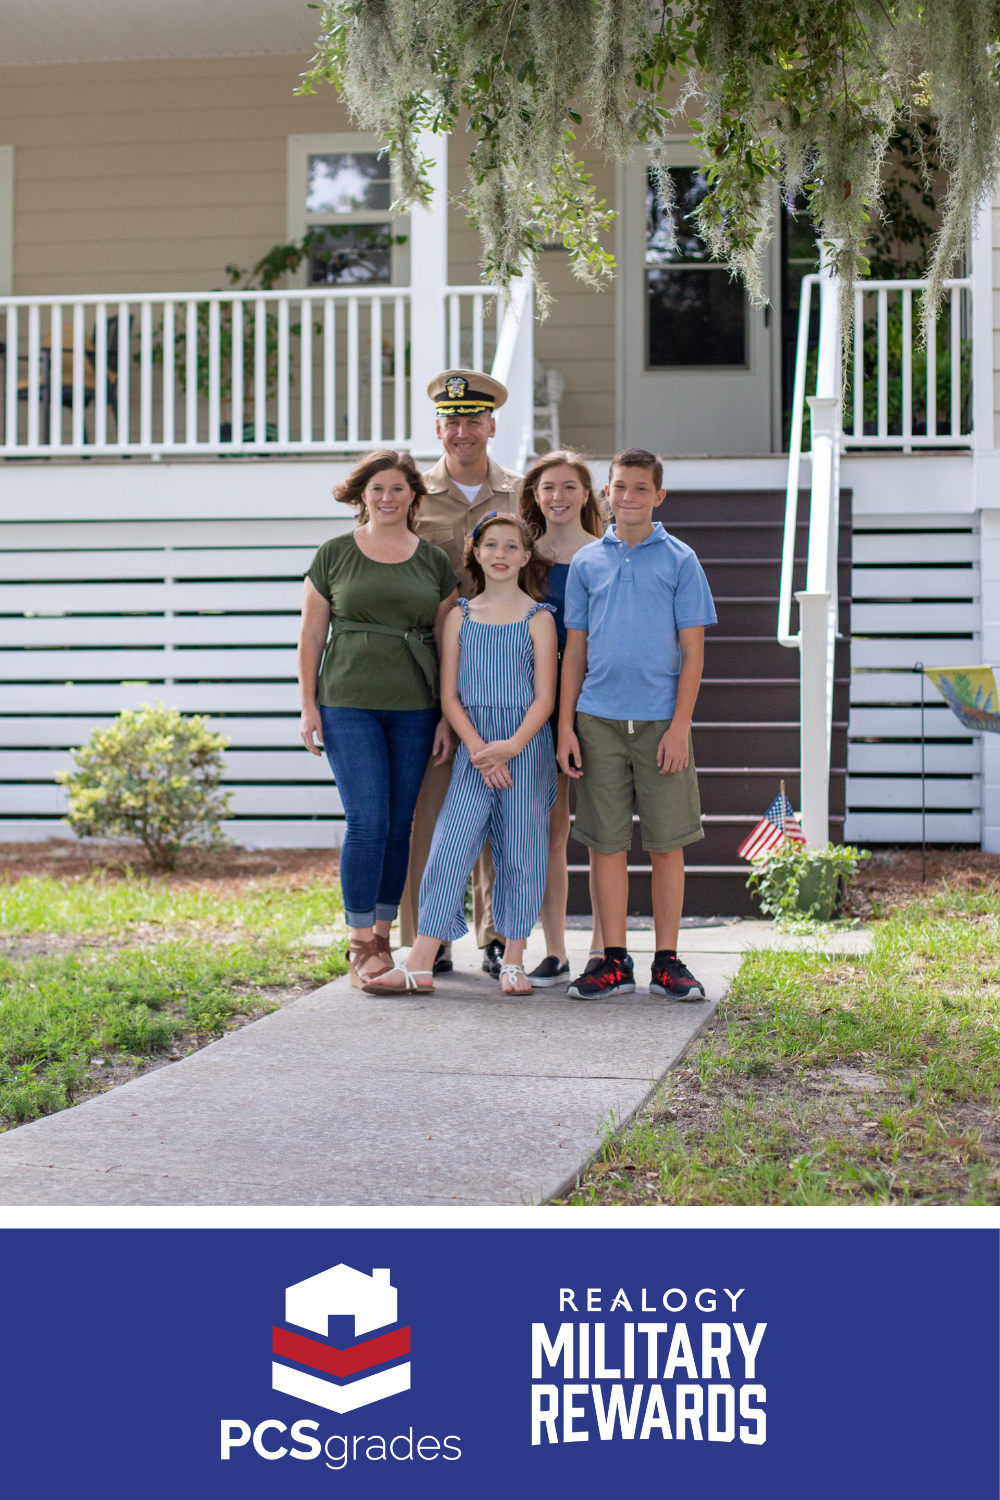 45 Military Home Buying And Selling Ideas In 2021 House Guide Home Buying Tips Home Buying